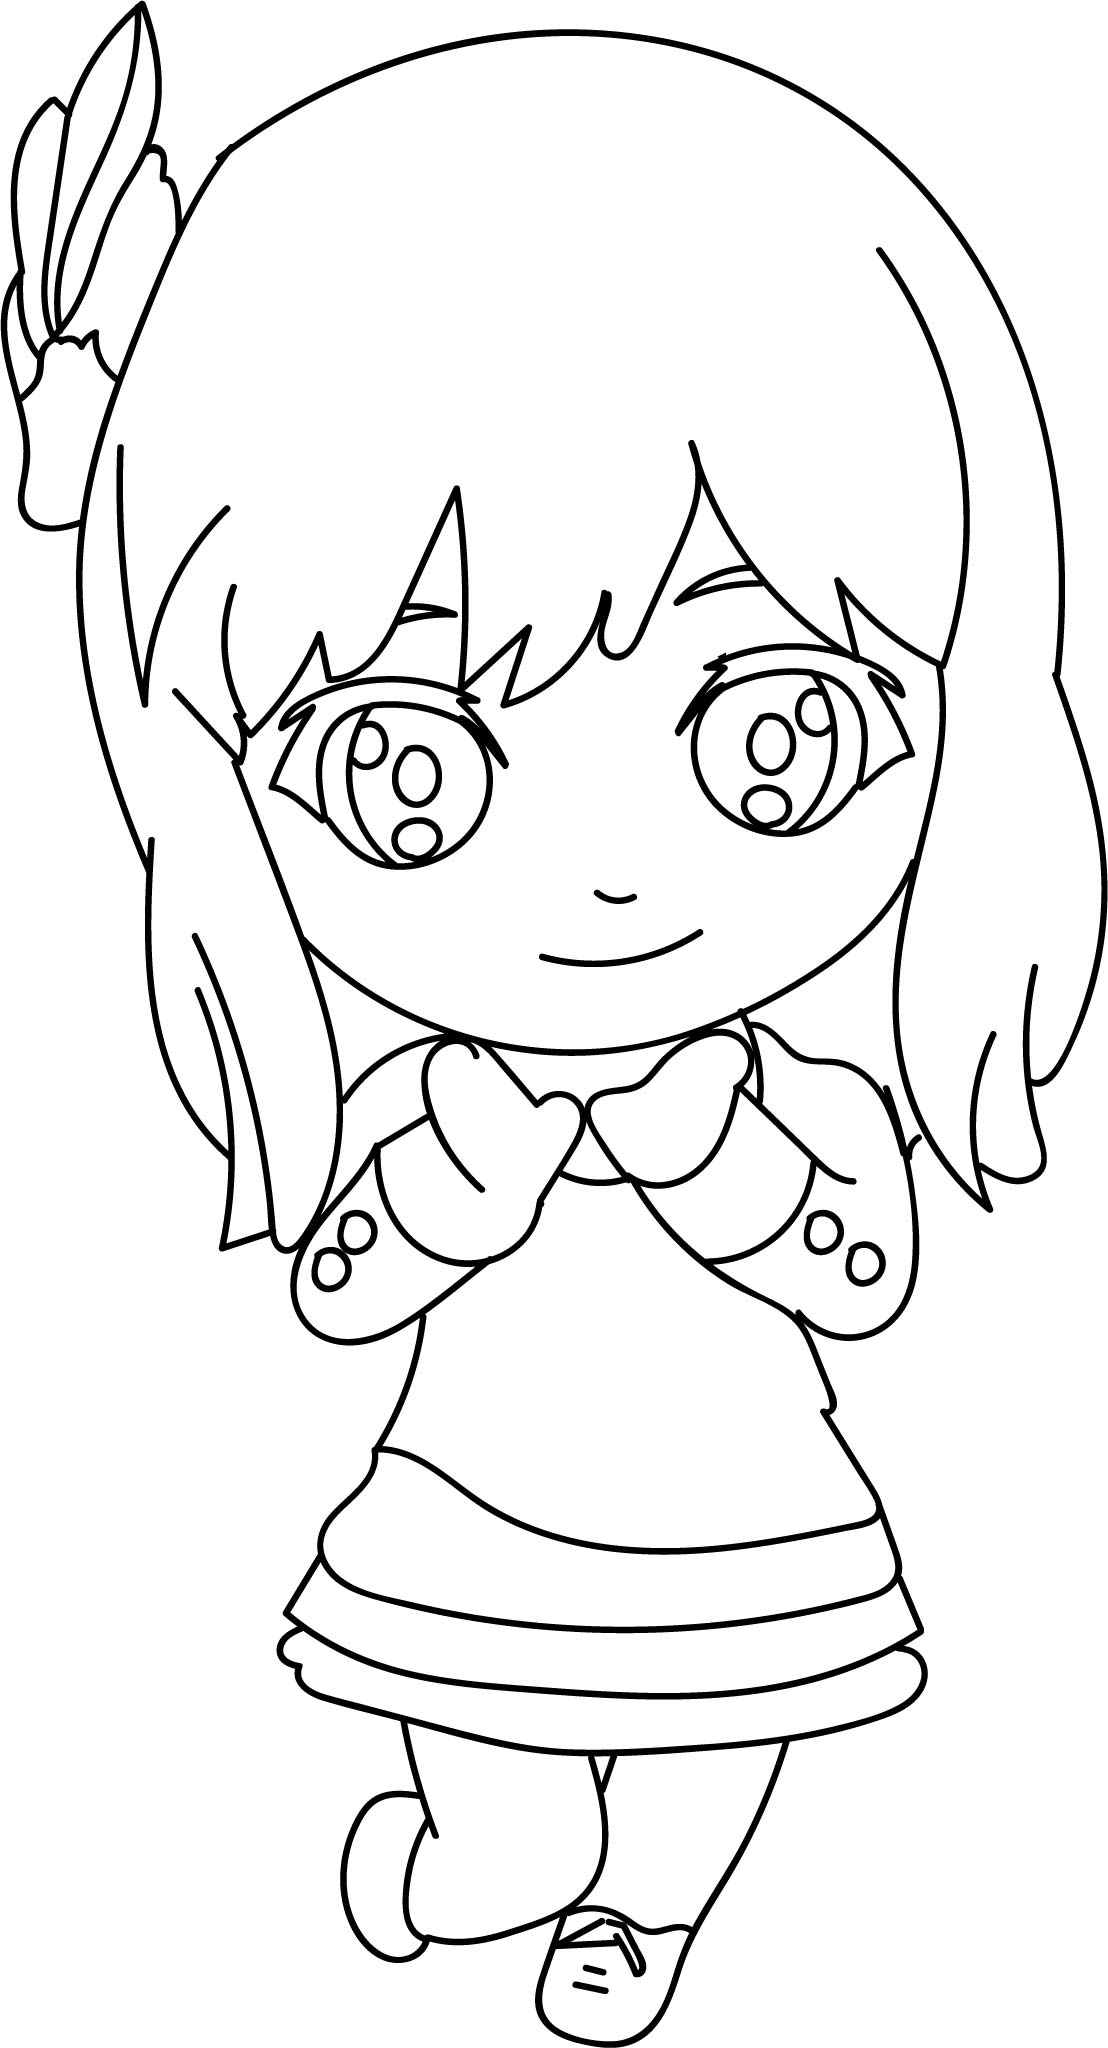 Anime Chibi Cute Girl Coloring Page